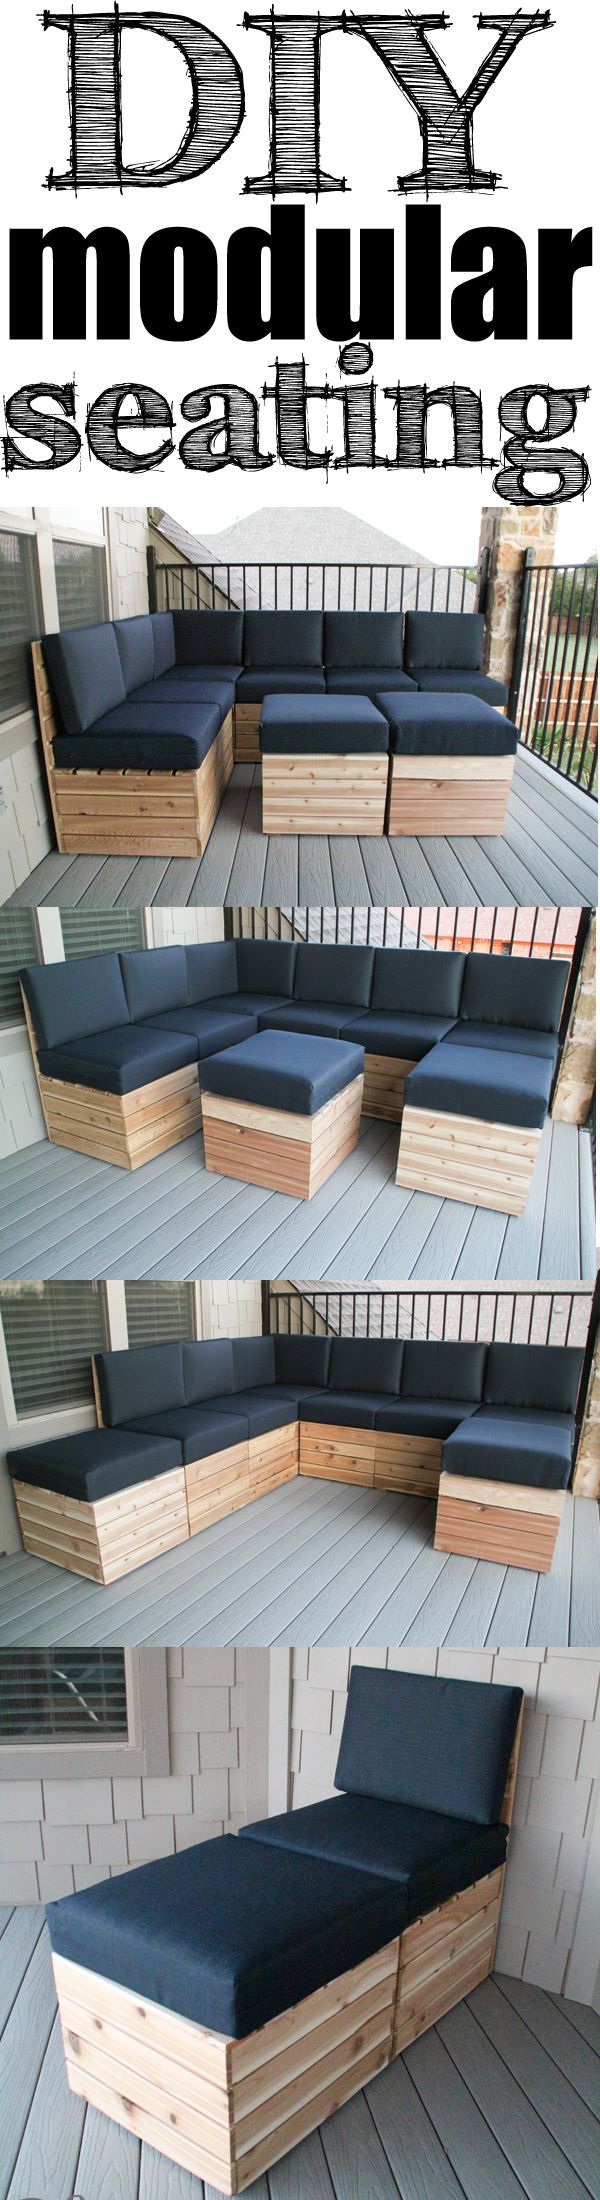 DIY Modular Outdoor Seating | Spaces, Easy and Free